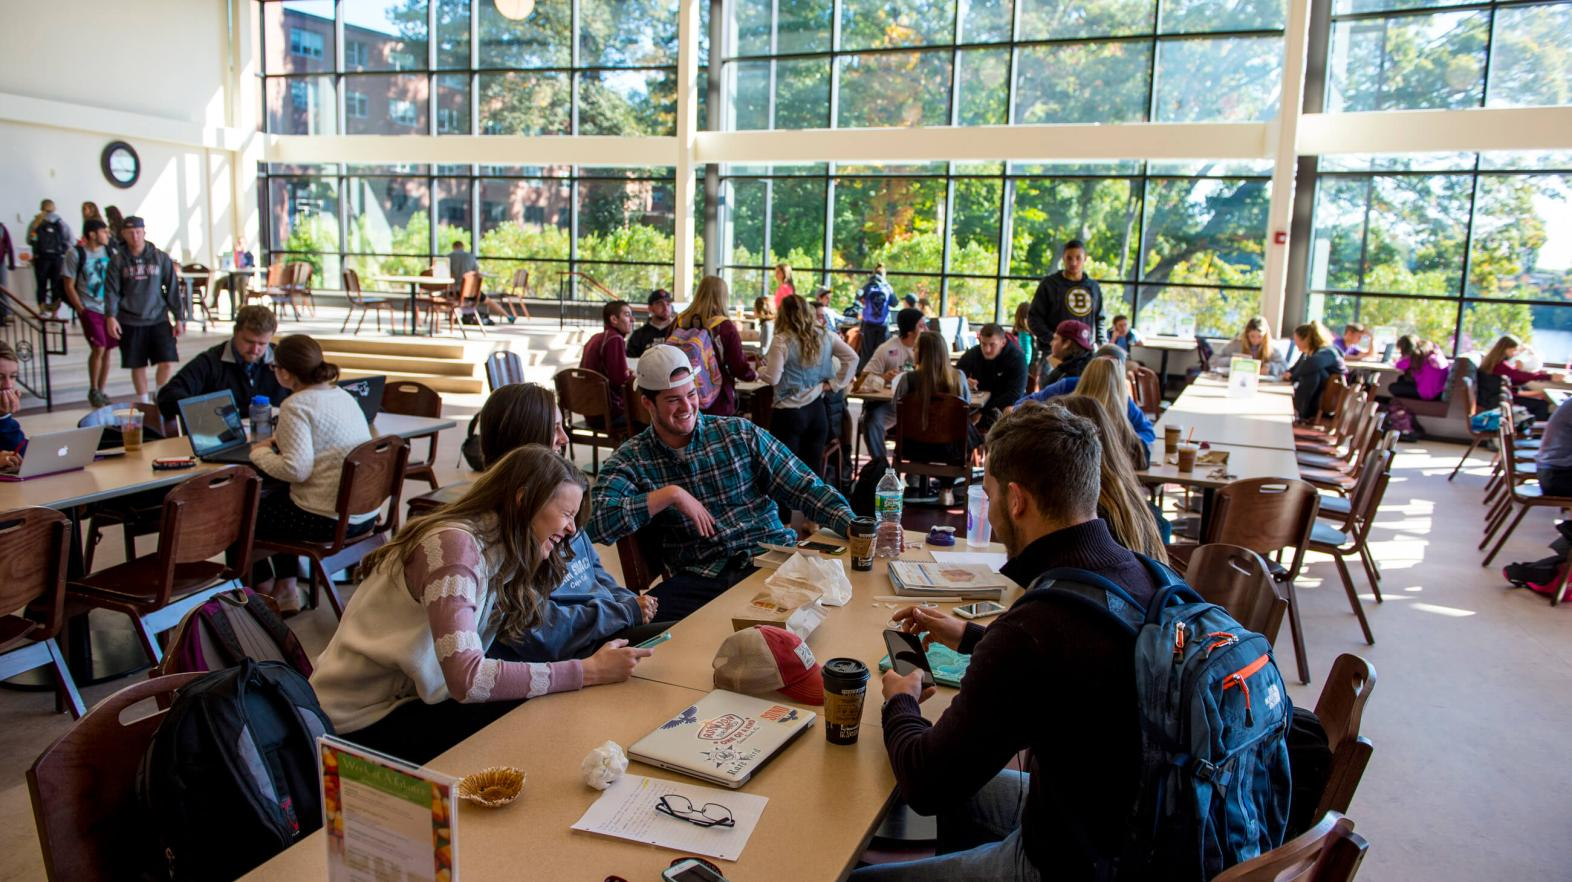 Students gather in Flynn Campus Union to eat, study, and socialize.